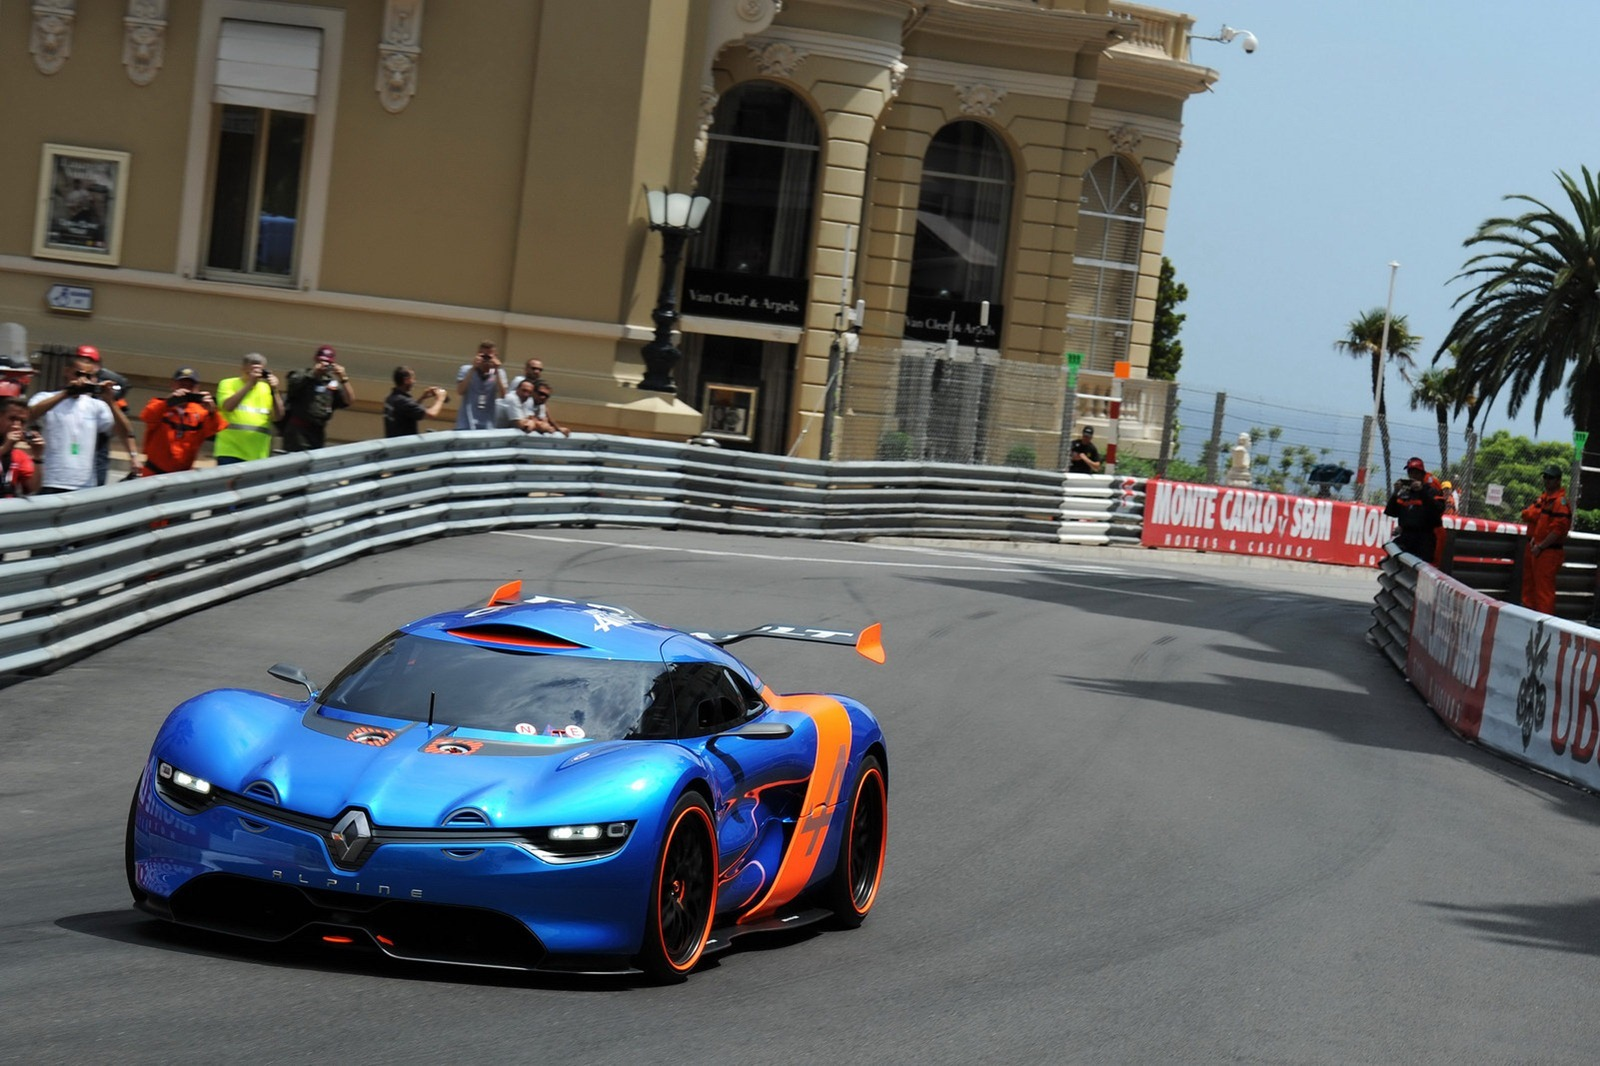 alpine to unveil new concept at le mans 24h race says report. Black Bedroom Furniture Sets. Home Design Ideas